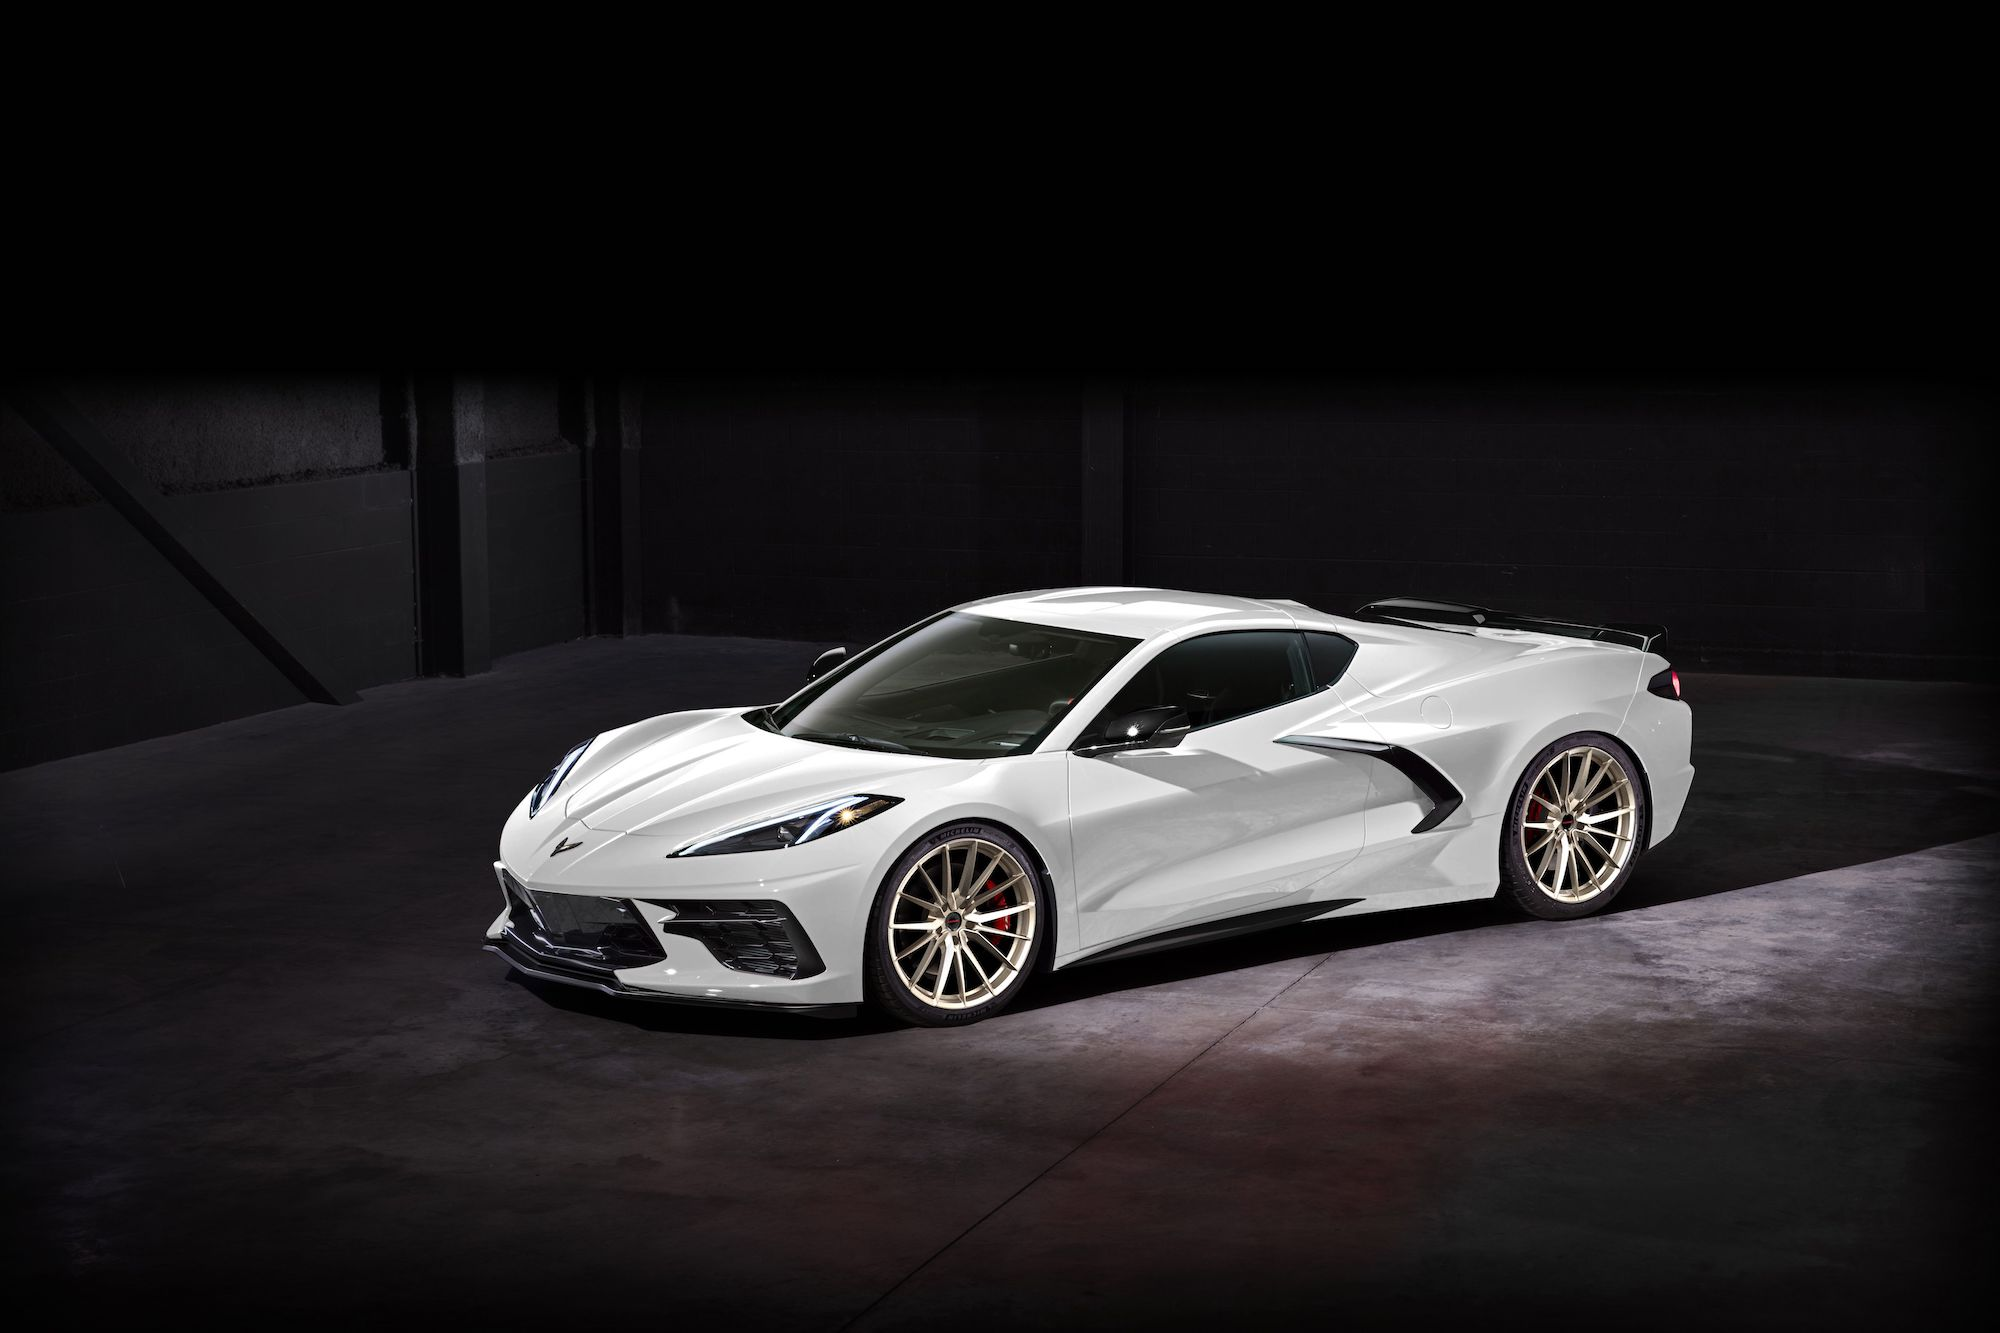 2020 Chevrolet C8 Corvette on Forgeline One Piece Forged Monoblock NW102 Wheels